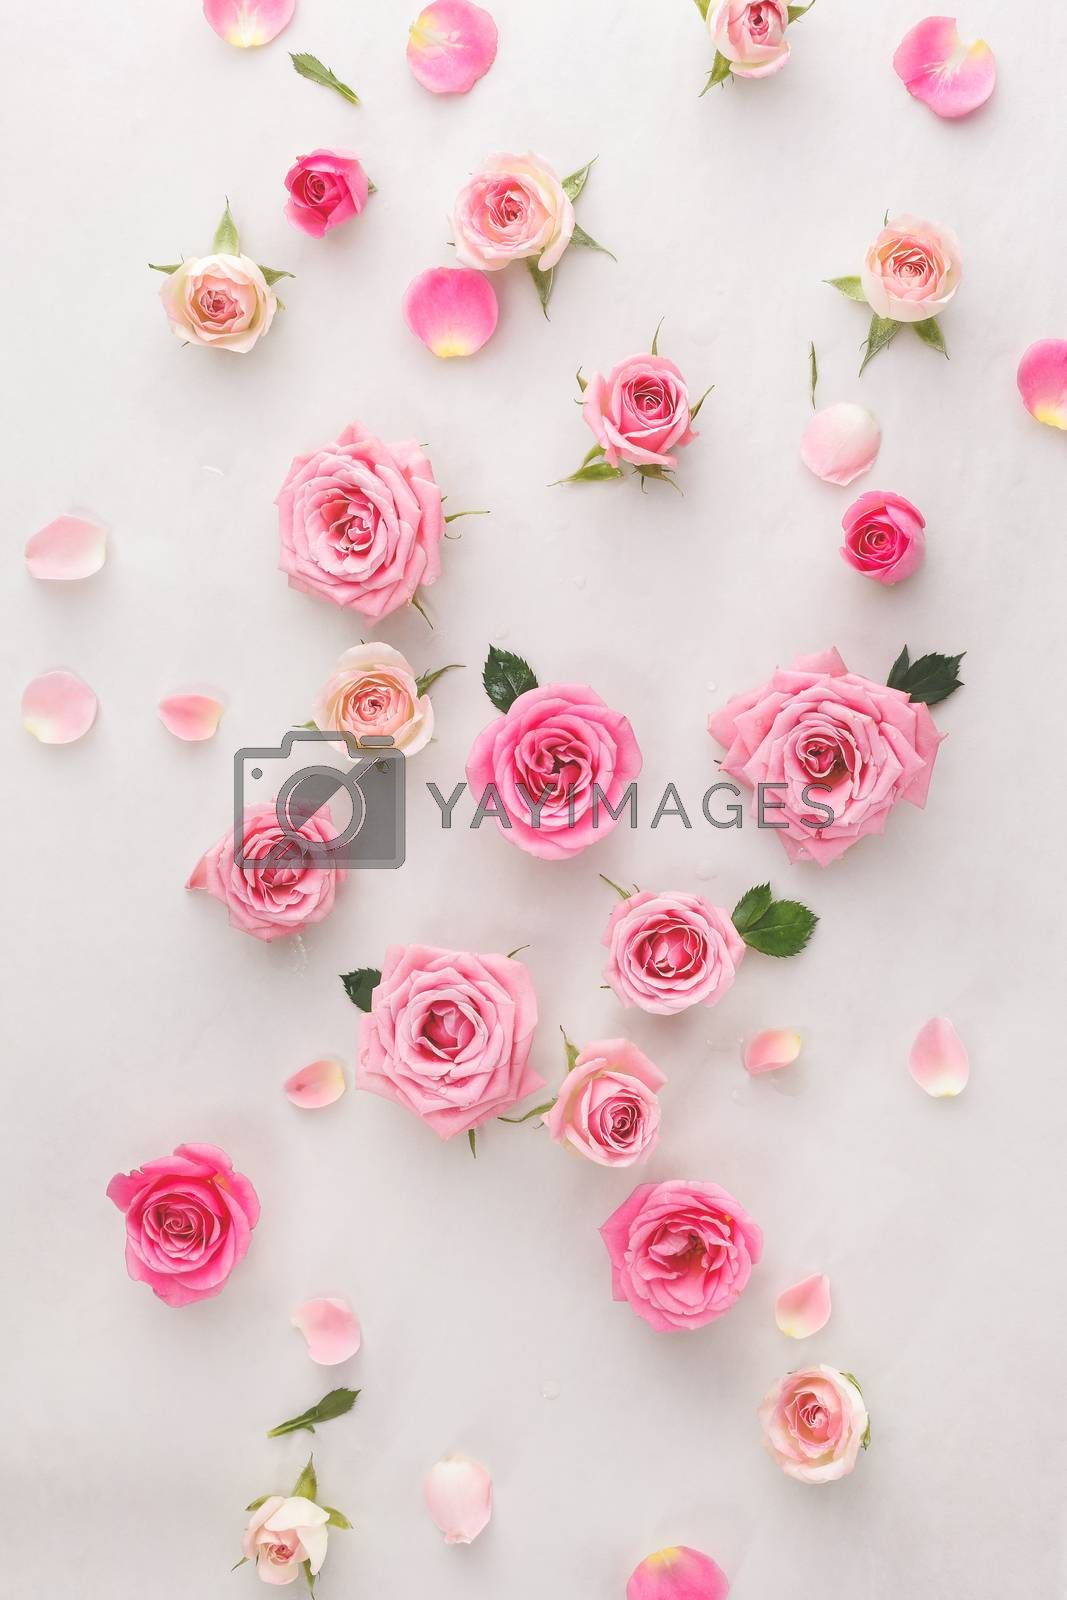 Roses and petals scattered on white background, overhead view